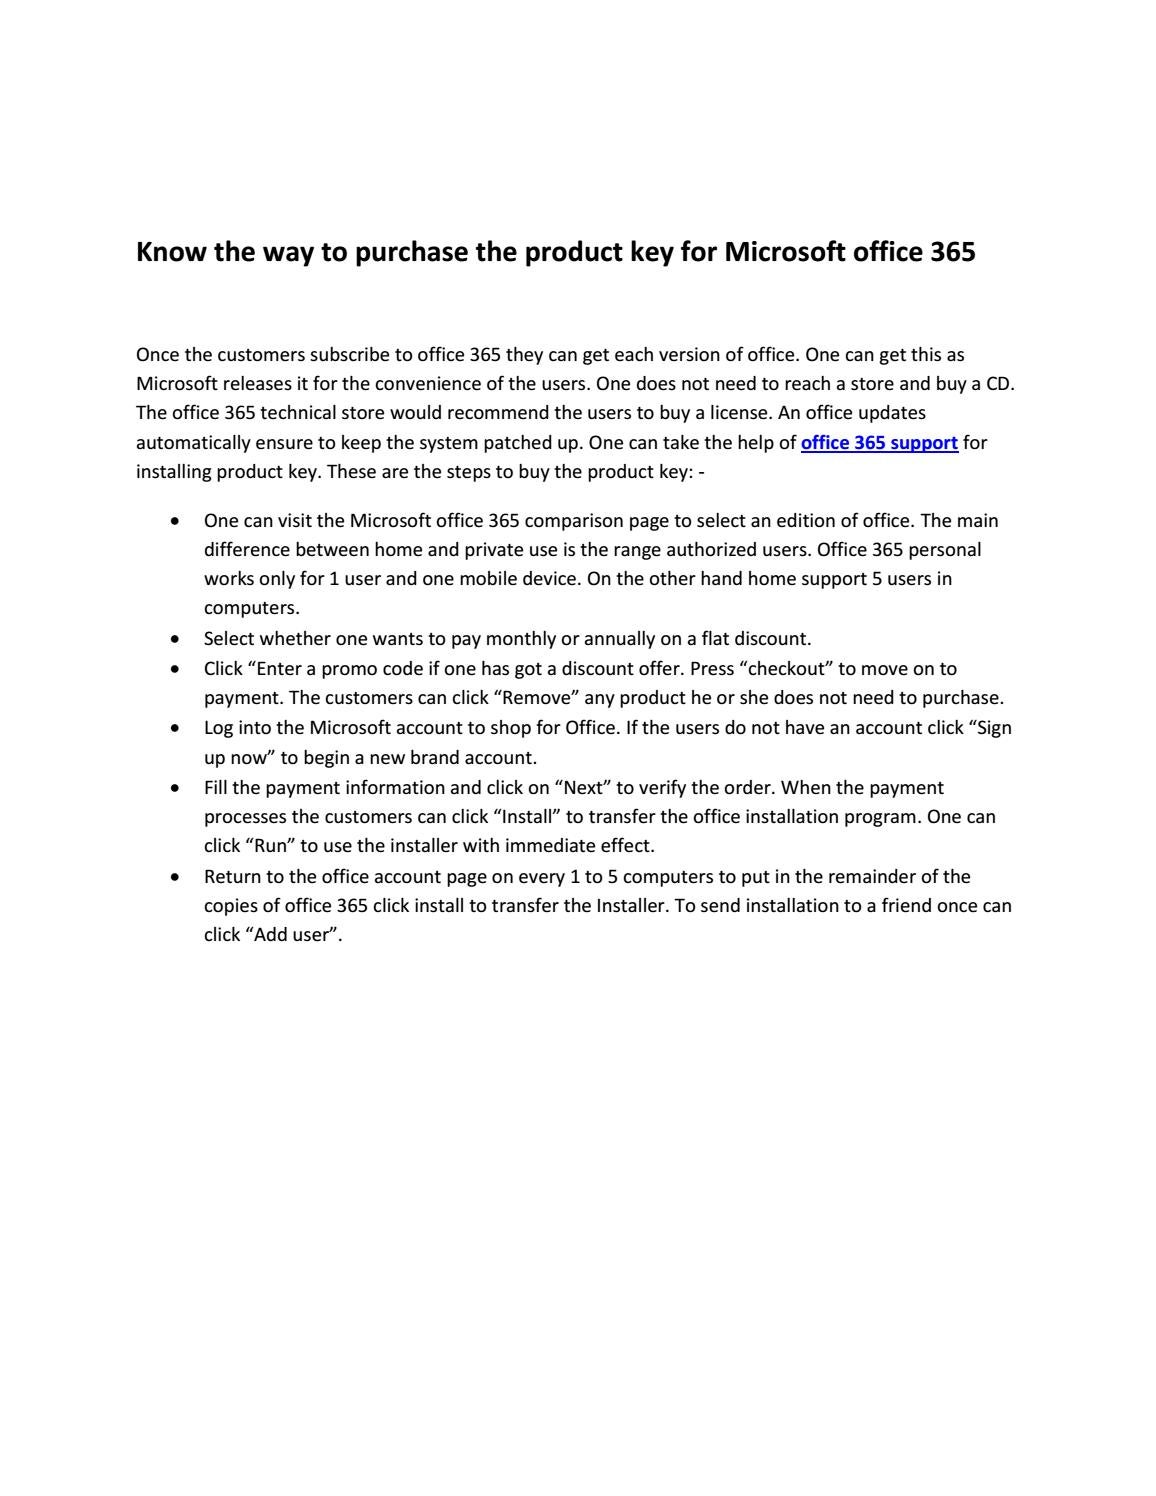 Know the way to purchase the product key for microsoft office 365 by ...